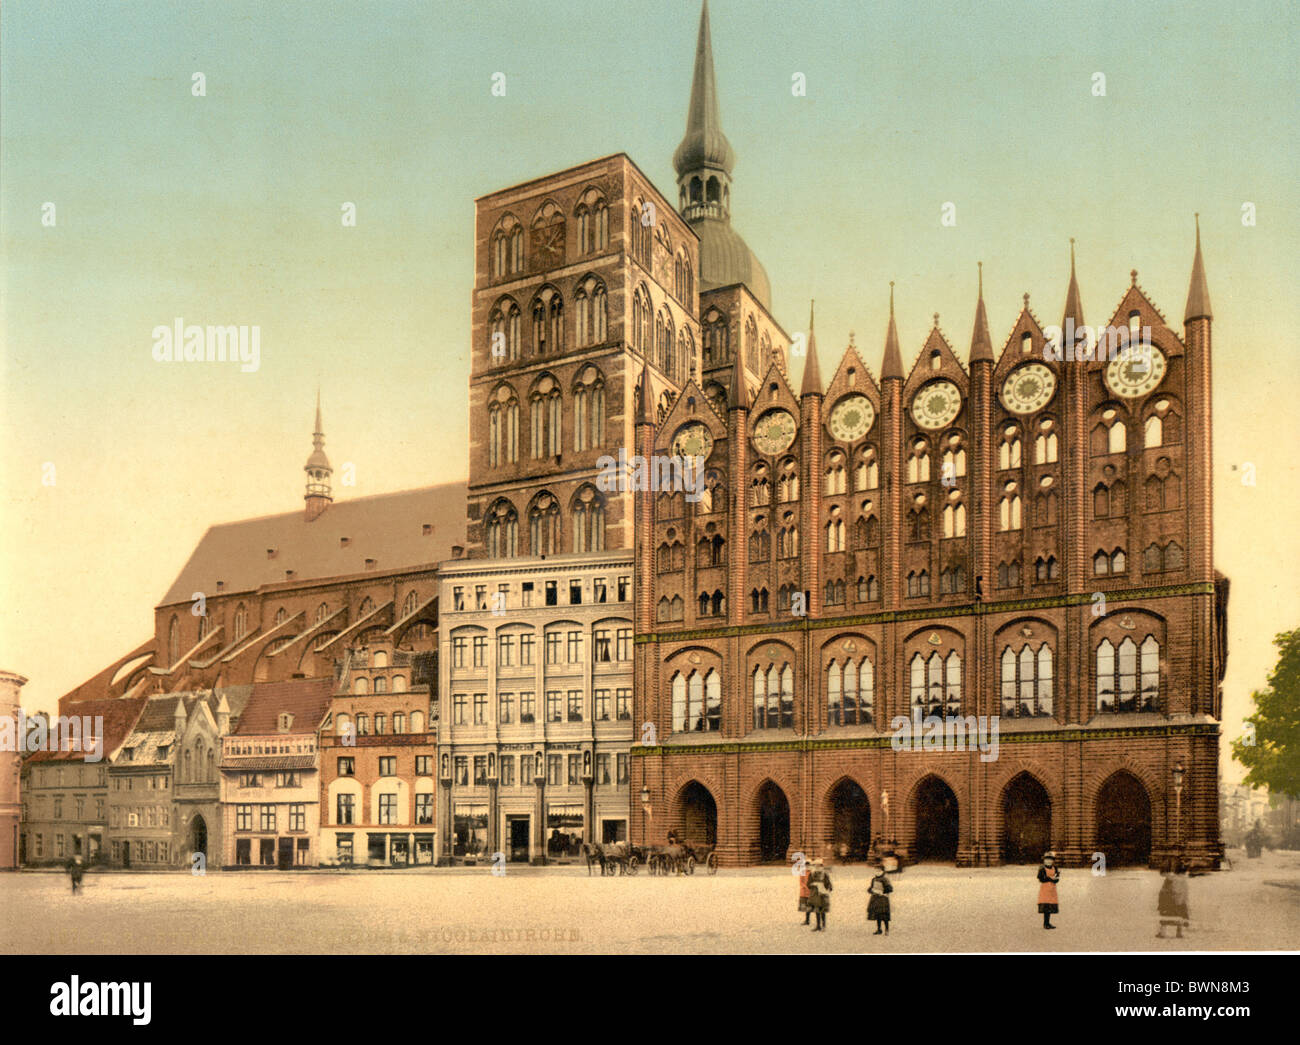 Stralsund Pomerania Germany Europe German Empire Photochrom about 1900 history historical historic Town hall - Stock Image